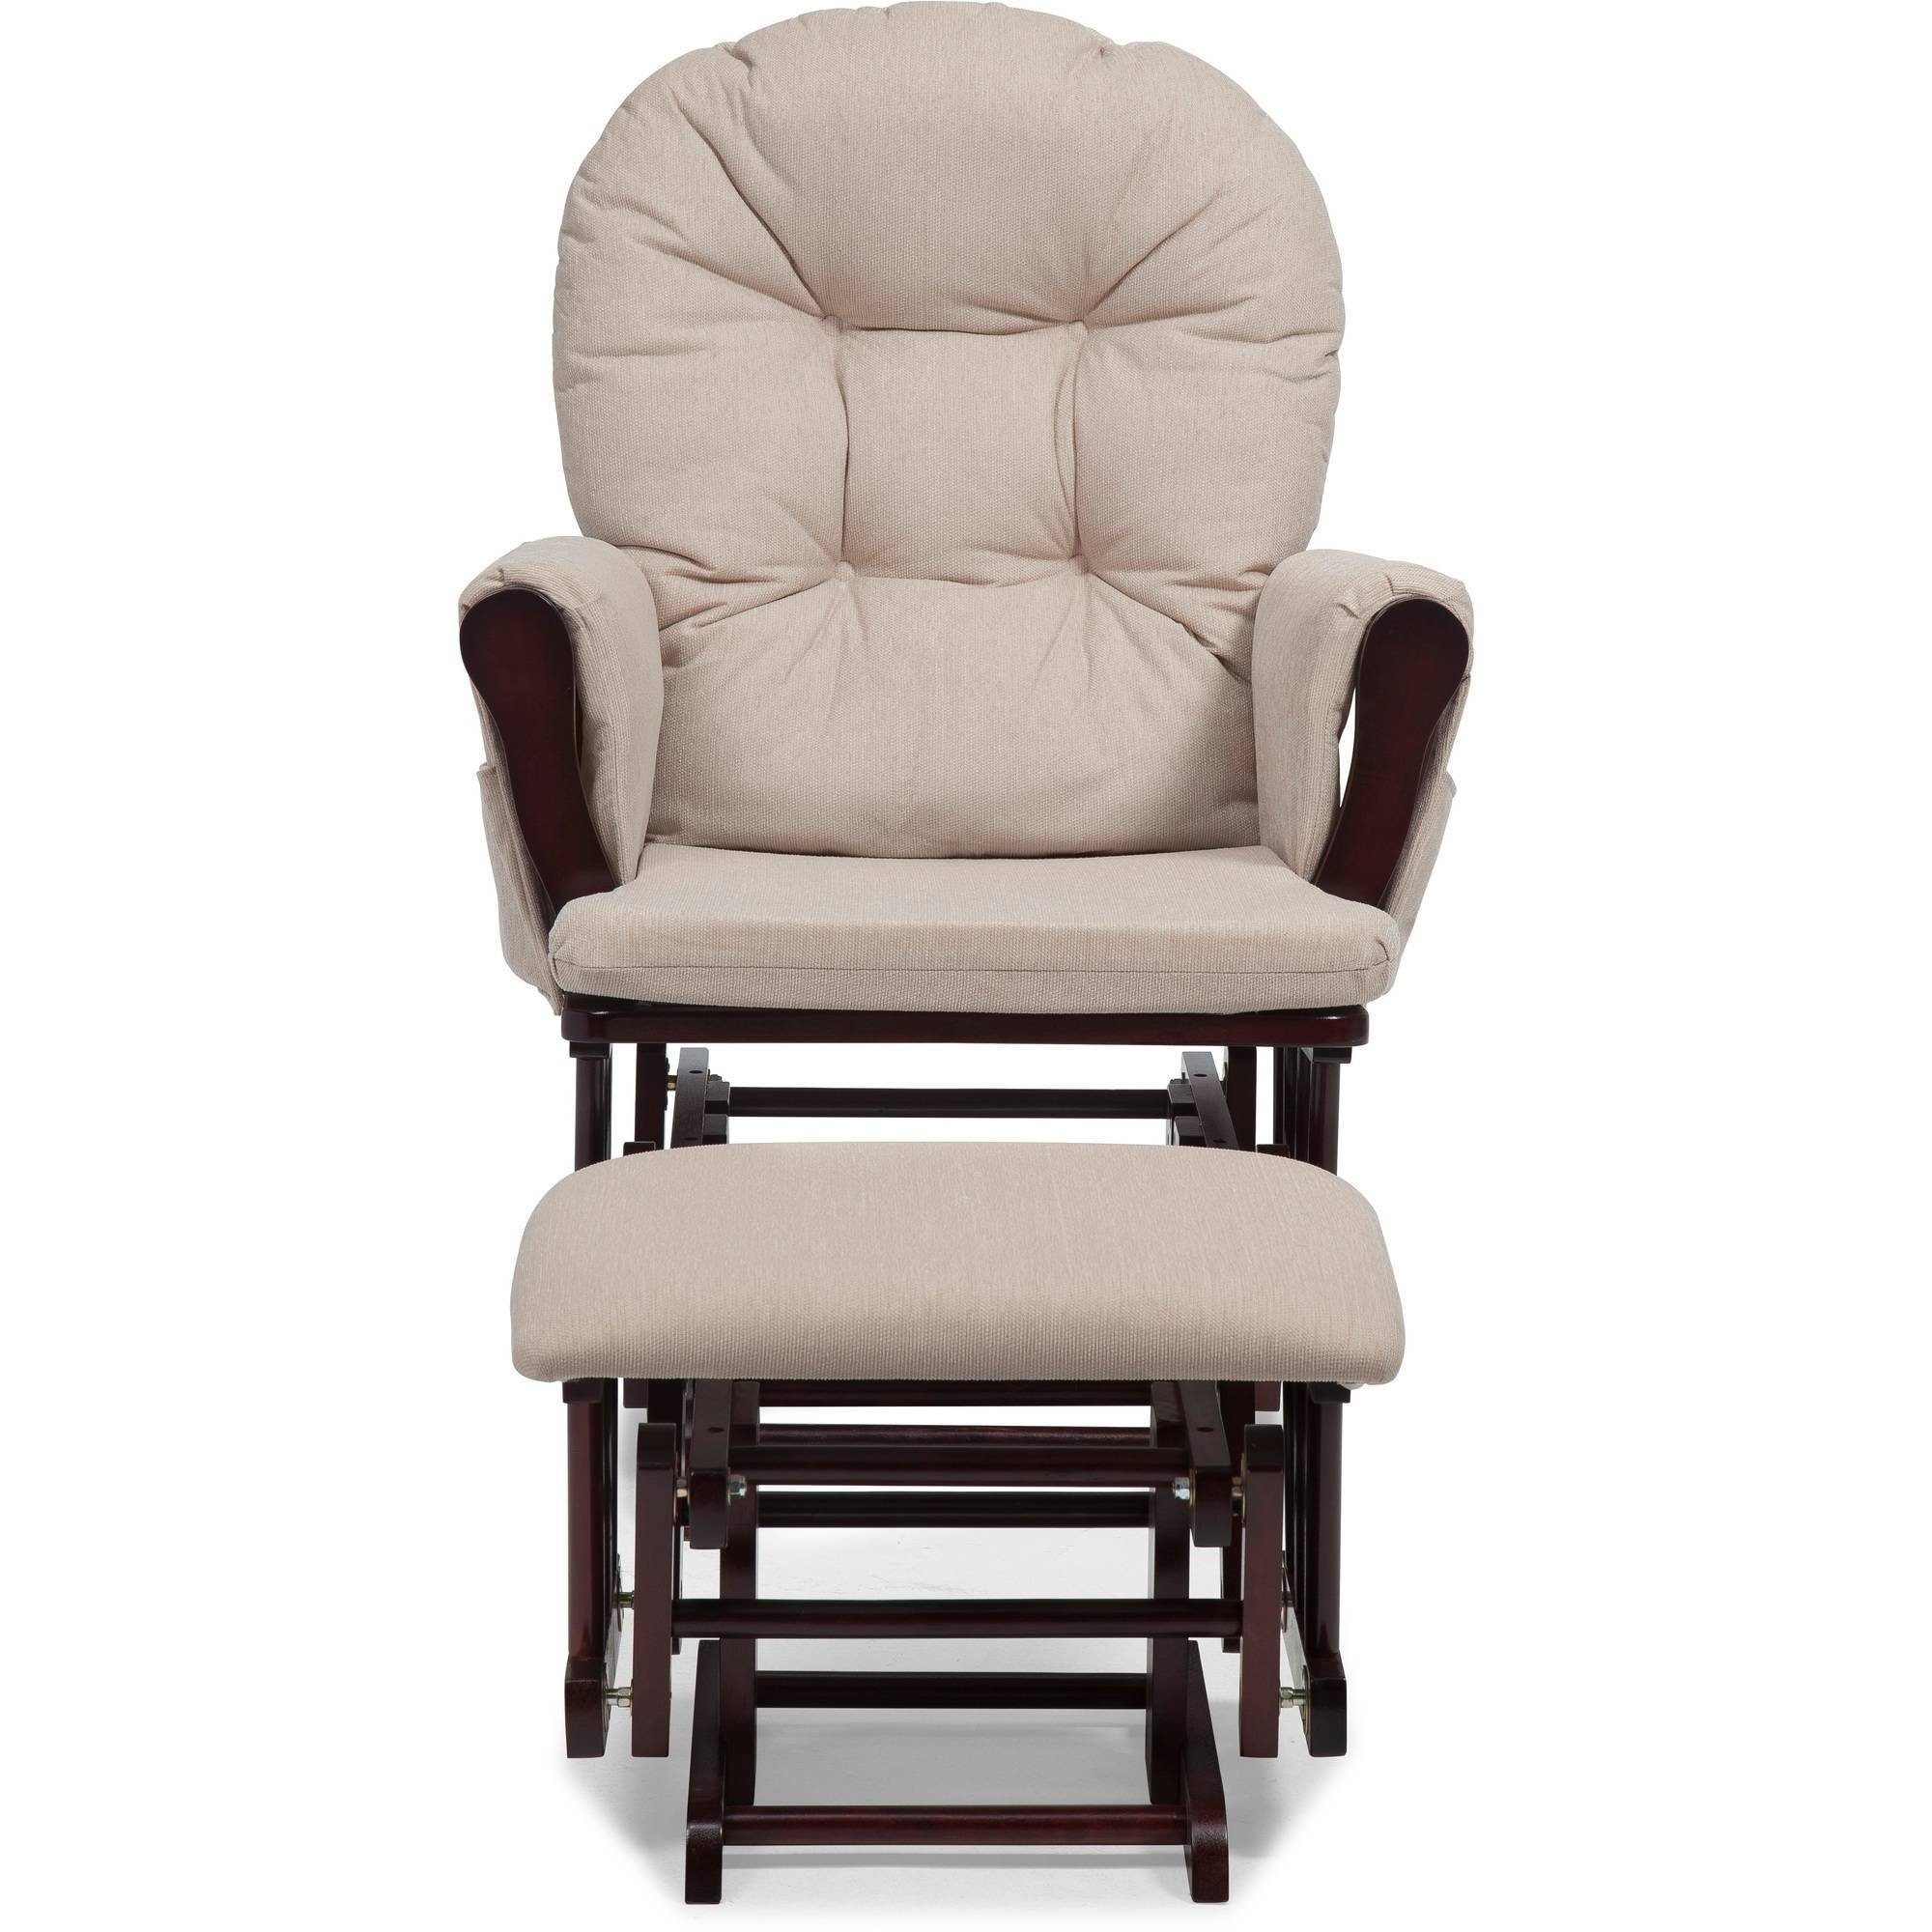 Comfort Glider and Ottoman, Cherry Finish and Beige Cushions Metal Ball Bearings for Smooth Motion The Pads Are Polyester with a Very Soft Luxurious Feeling Beautiful Non-Toxic Finish by AVA Furniture